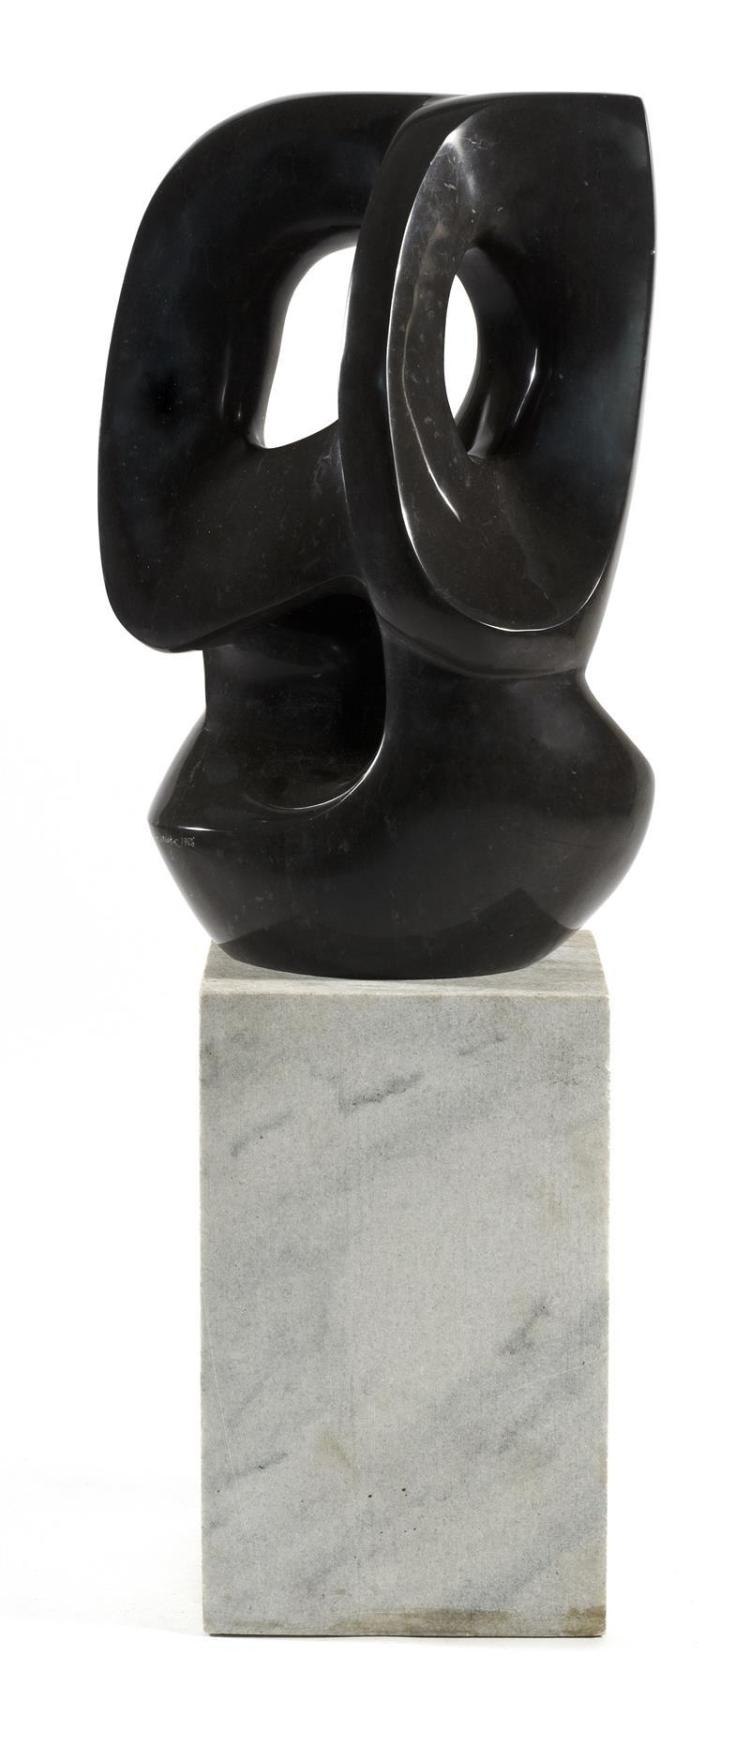 JULIE WARREN MARTIN, Tennessee, Kentucky, b. 1943, Depicting entwined ovals., Black marble sculpture, height 25